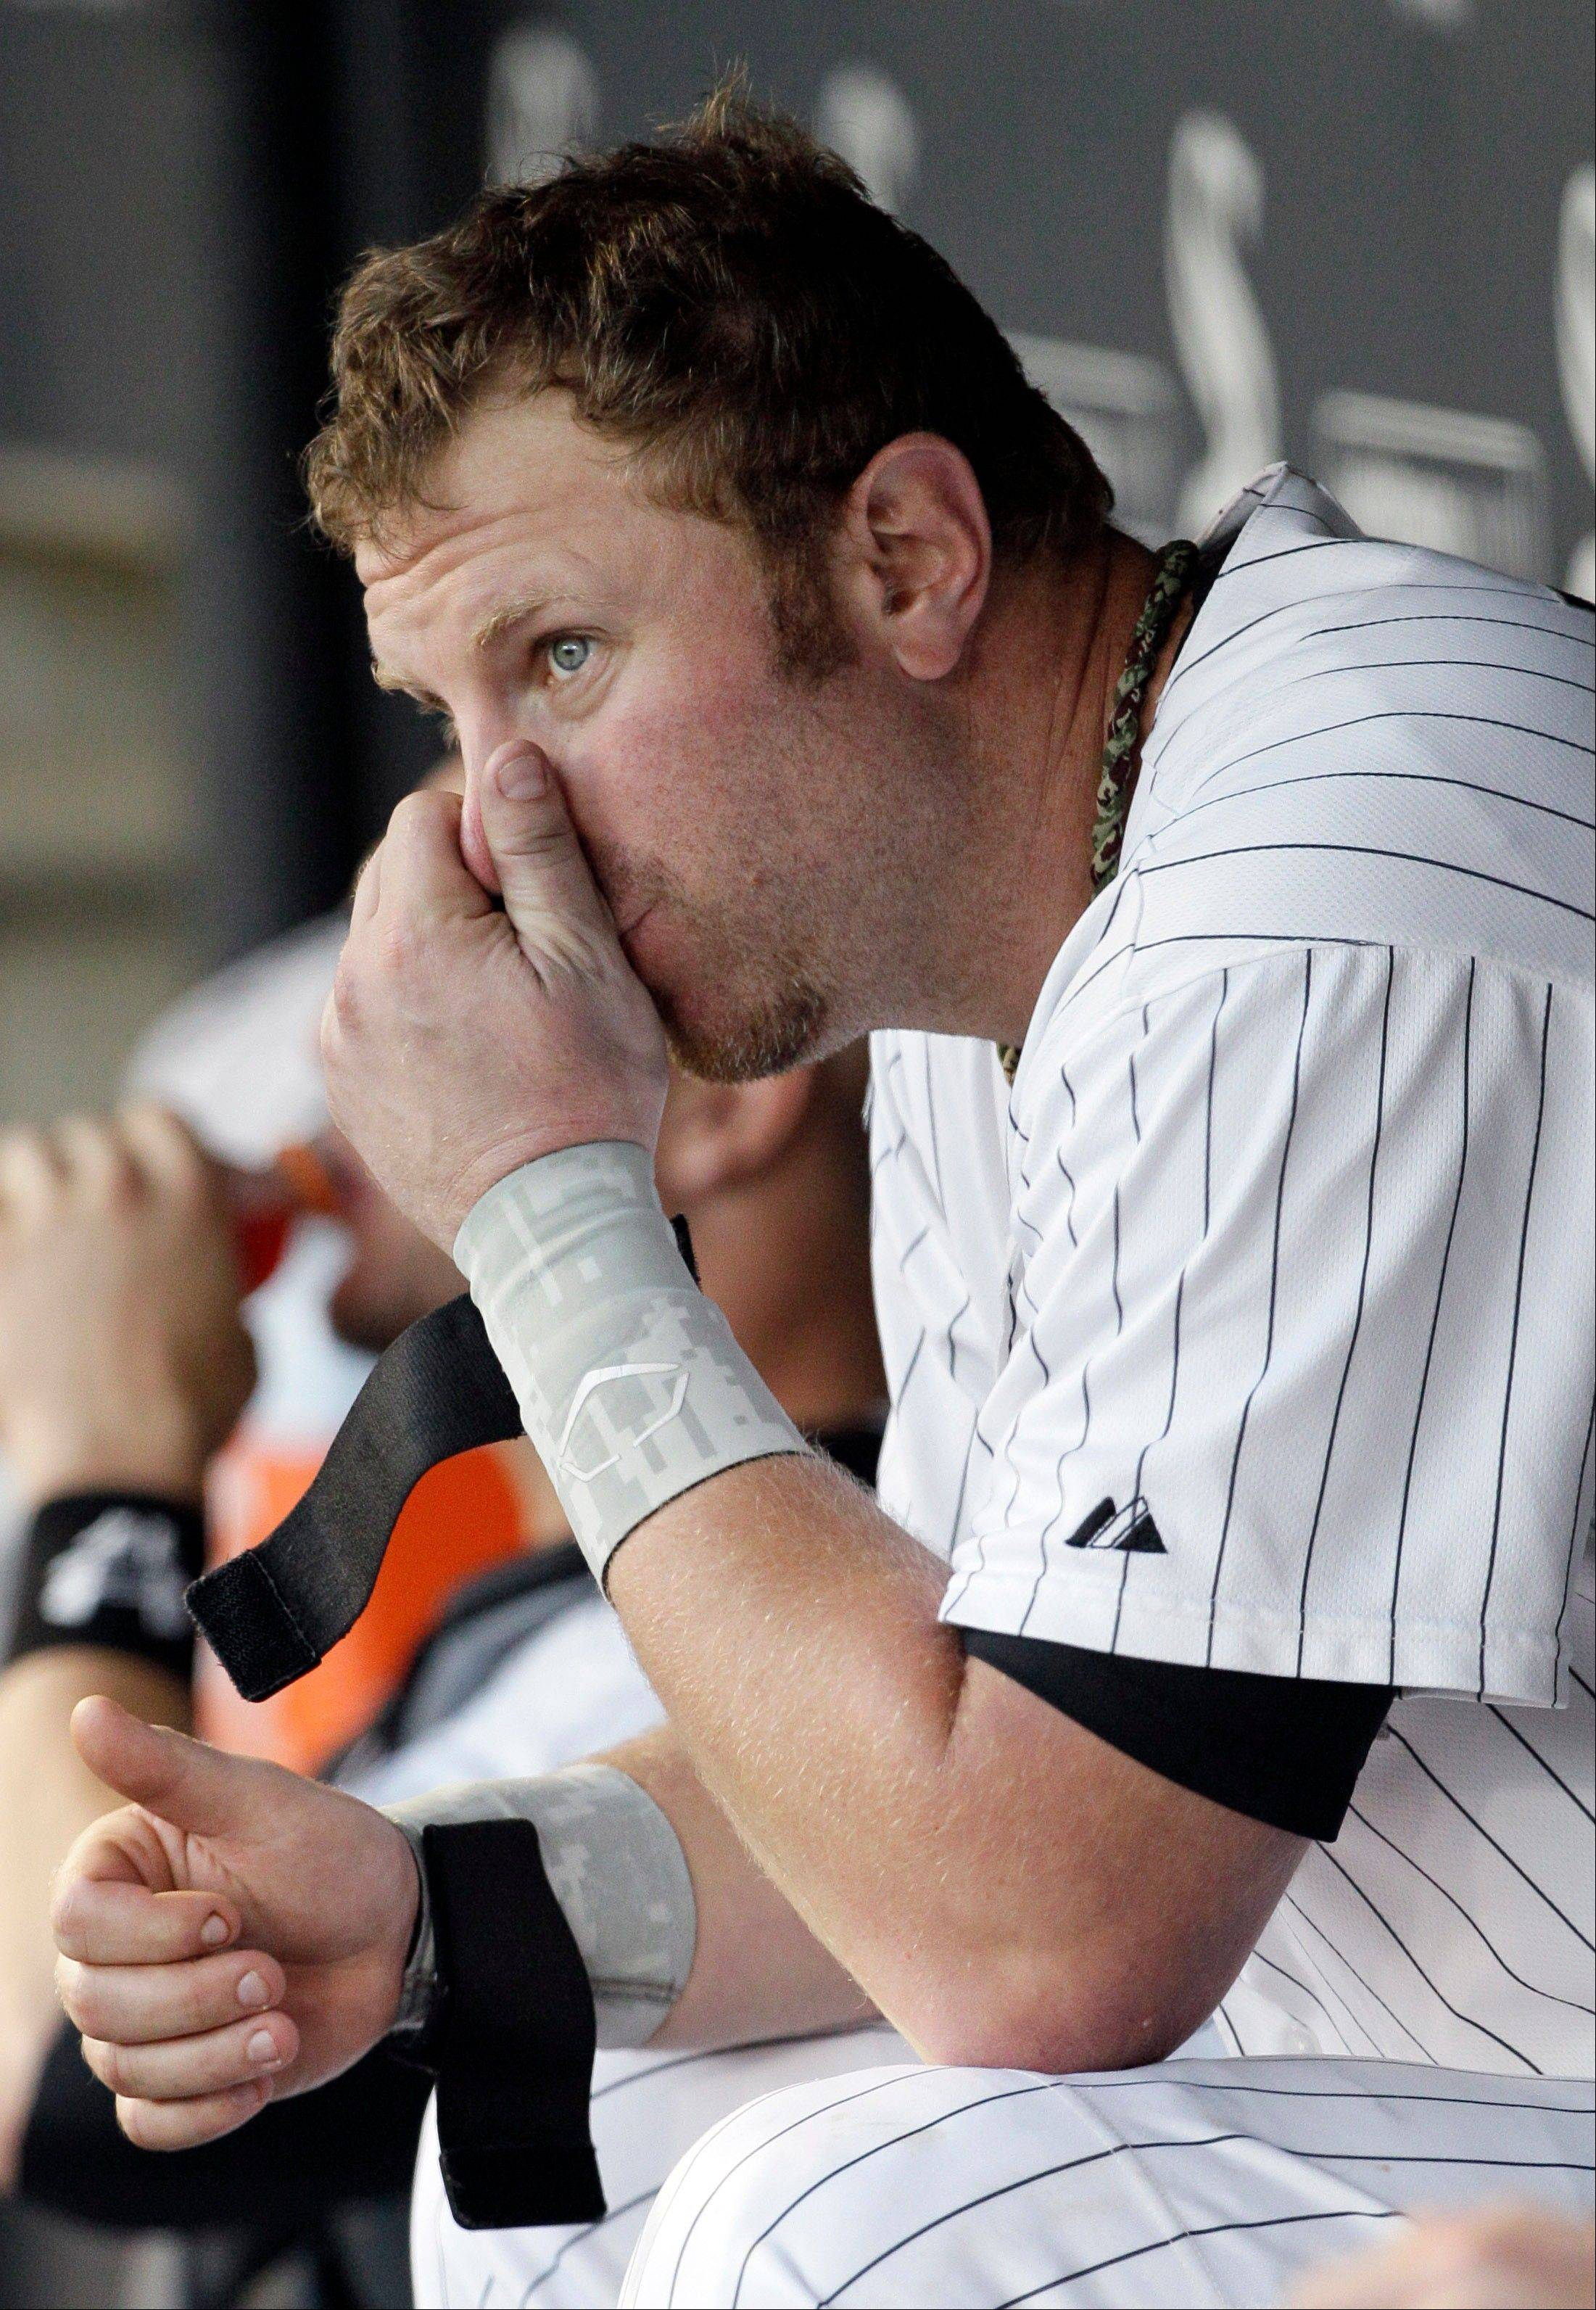 Adam Dunn watches his White Sox teammates play against the Tampa Bay Rays Saturday during the eighth inning. The Rays won 10-4.